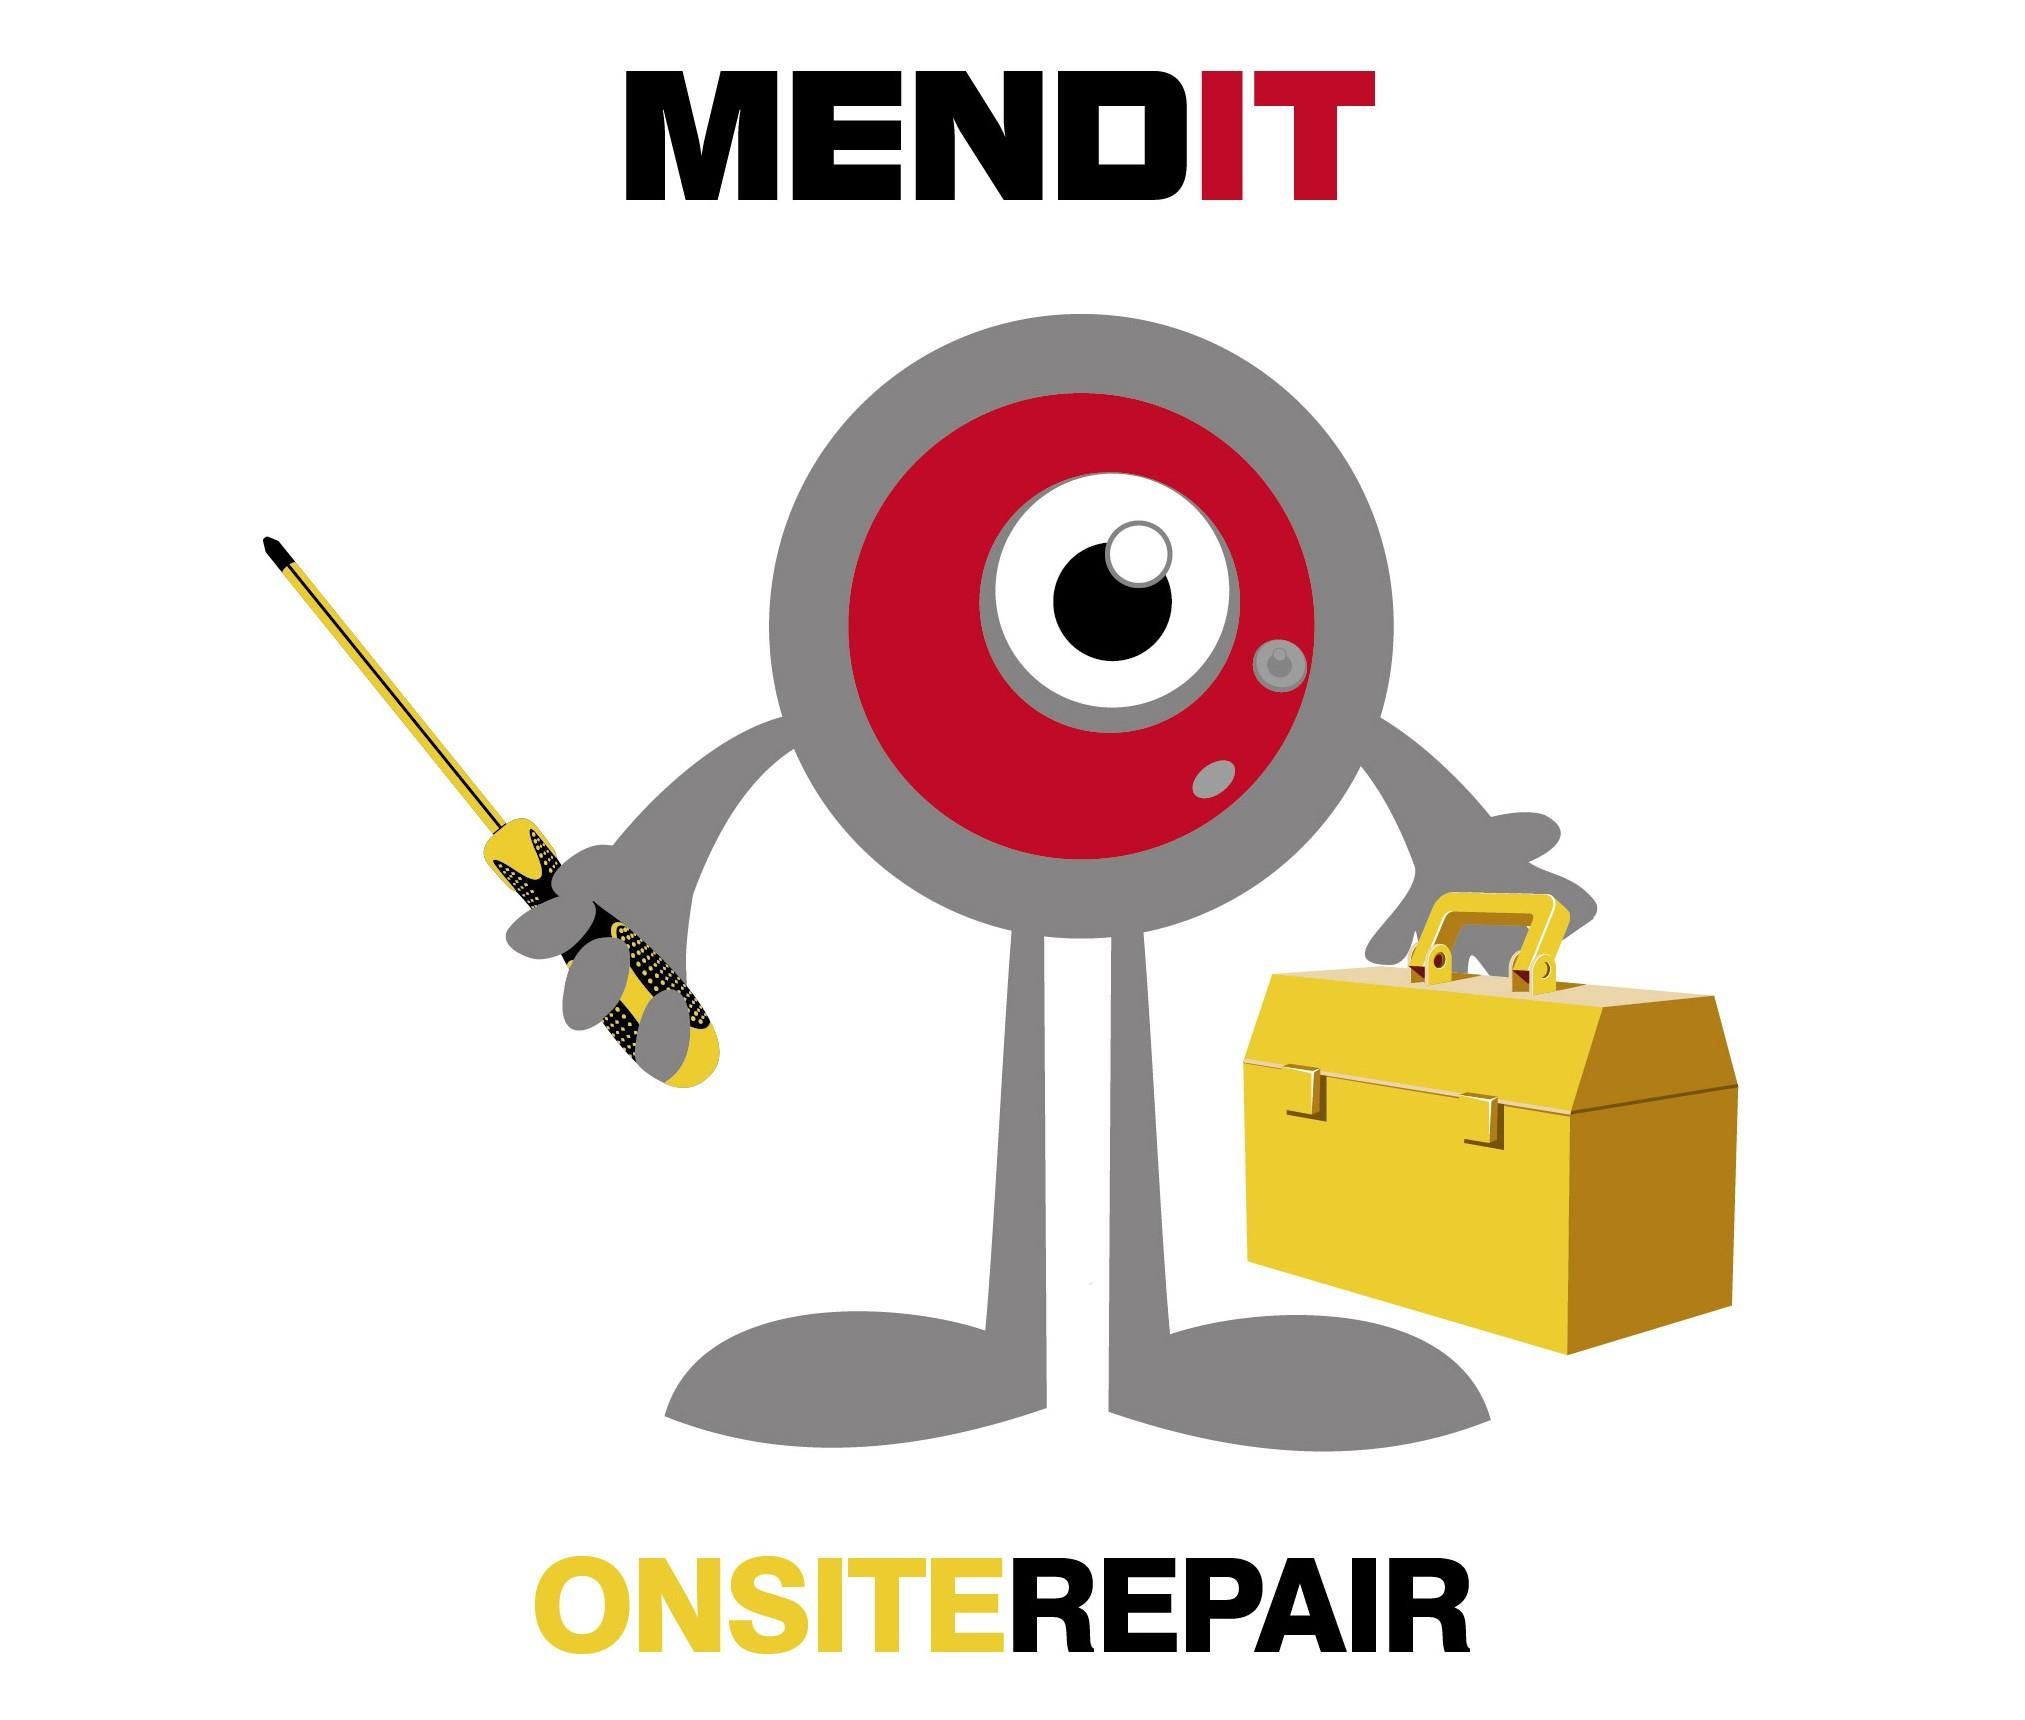 3 Year On-Site Warranty Service provided by MendIT (UK Only)